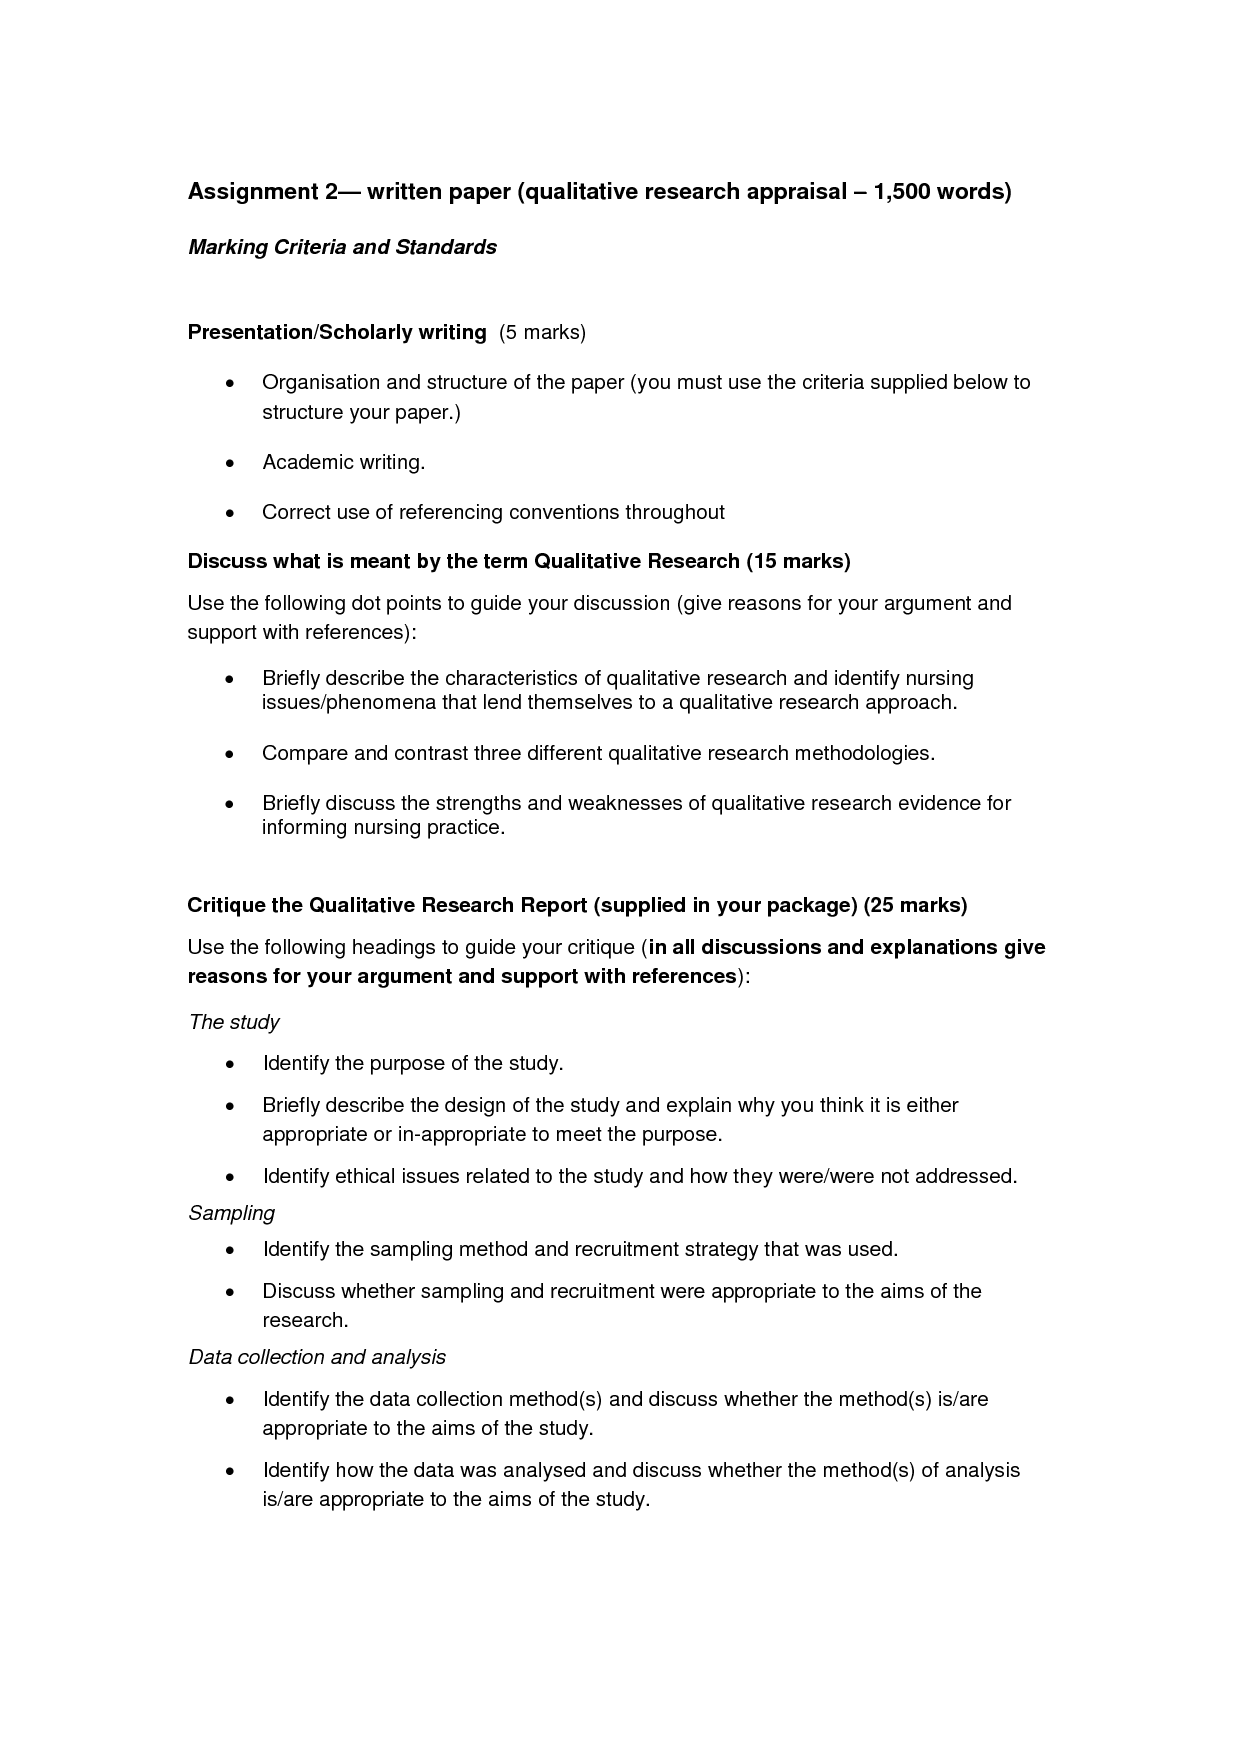 002 Research Paper Format Writing Amazing Qualitative Full